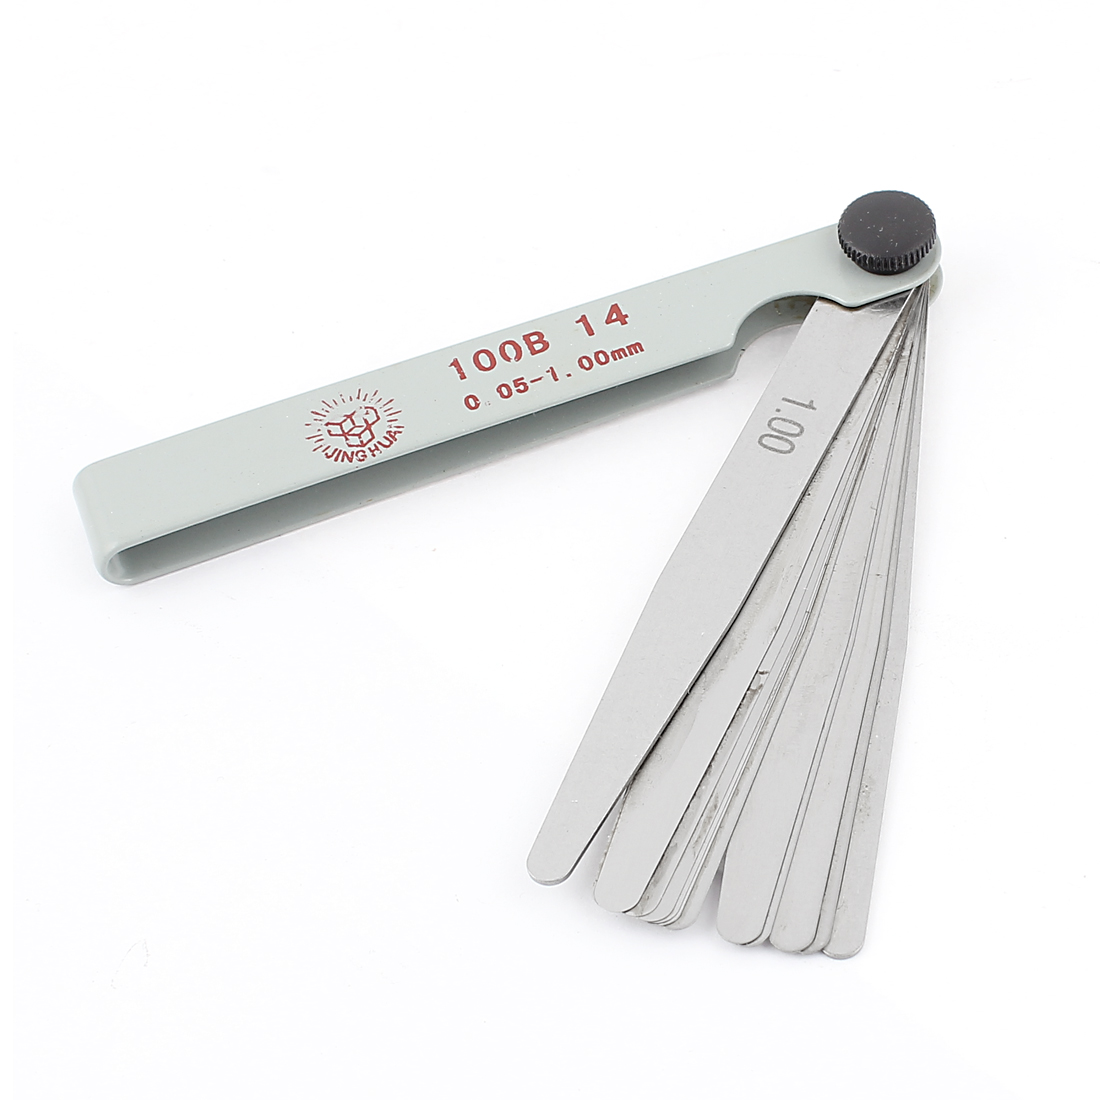 0.05 to 1mm Thickness Metric Measure Gage Feeler Gauge